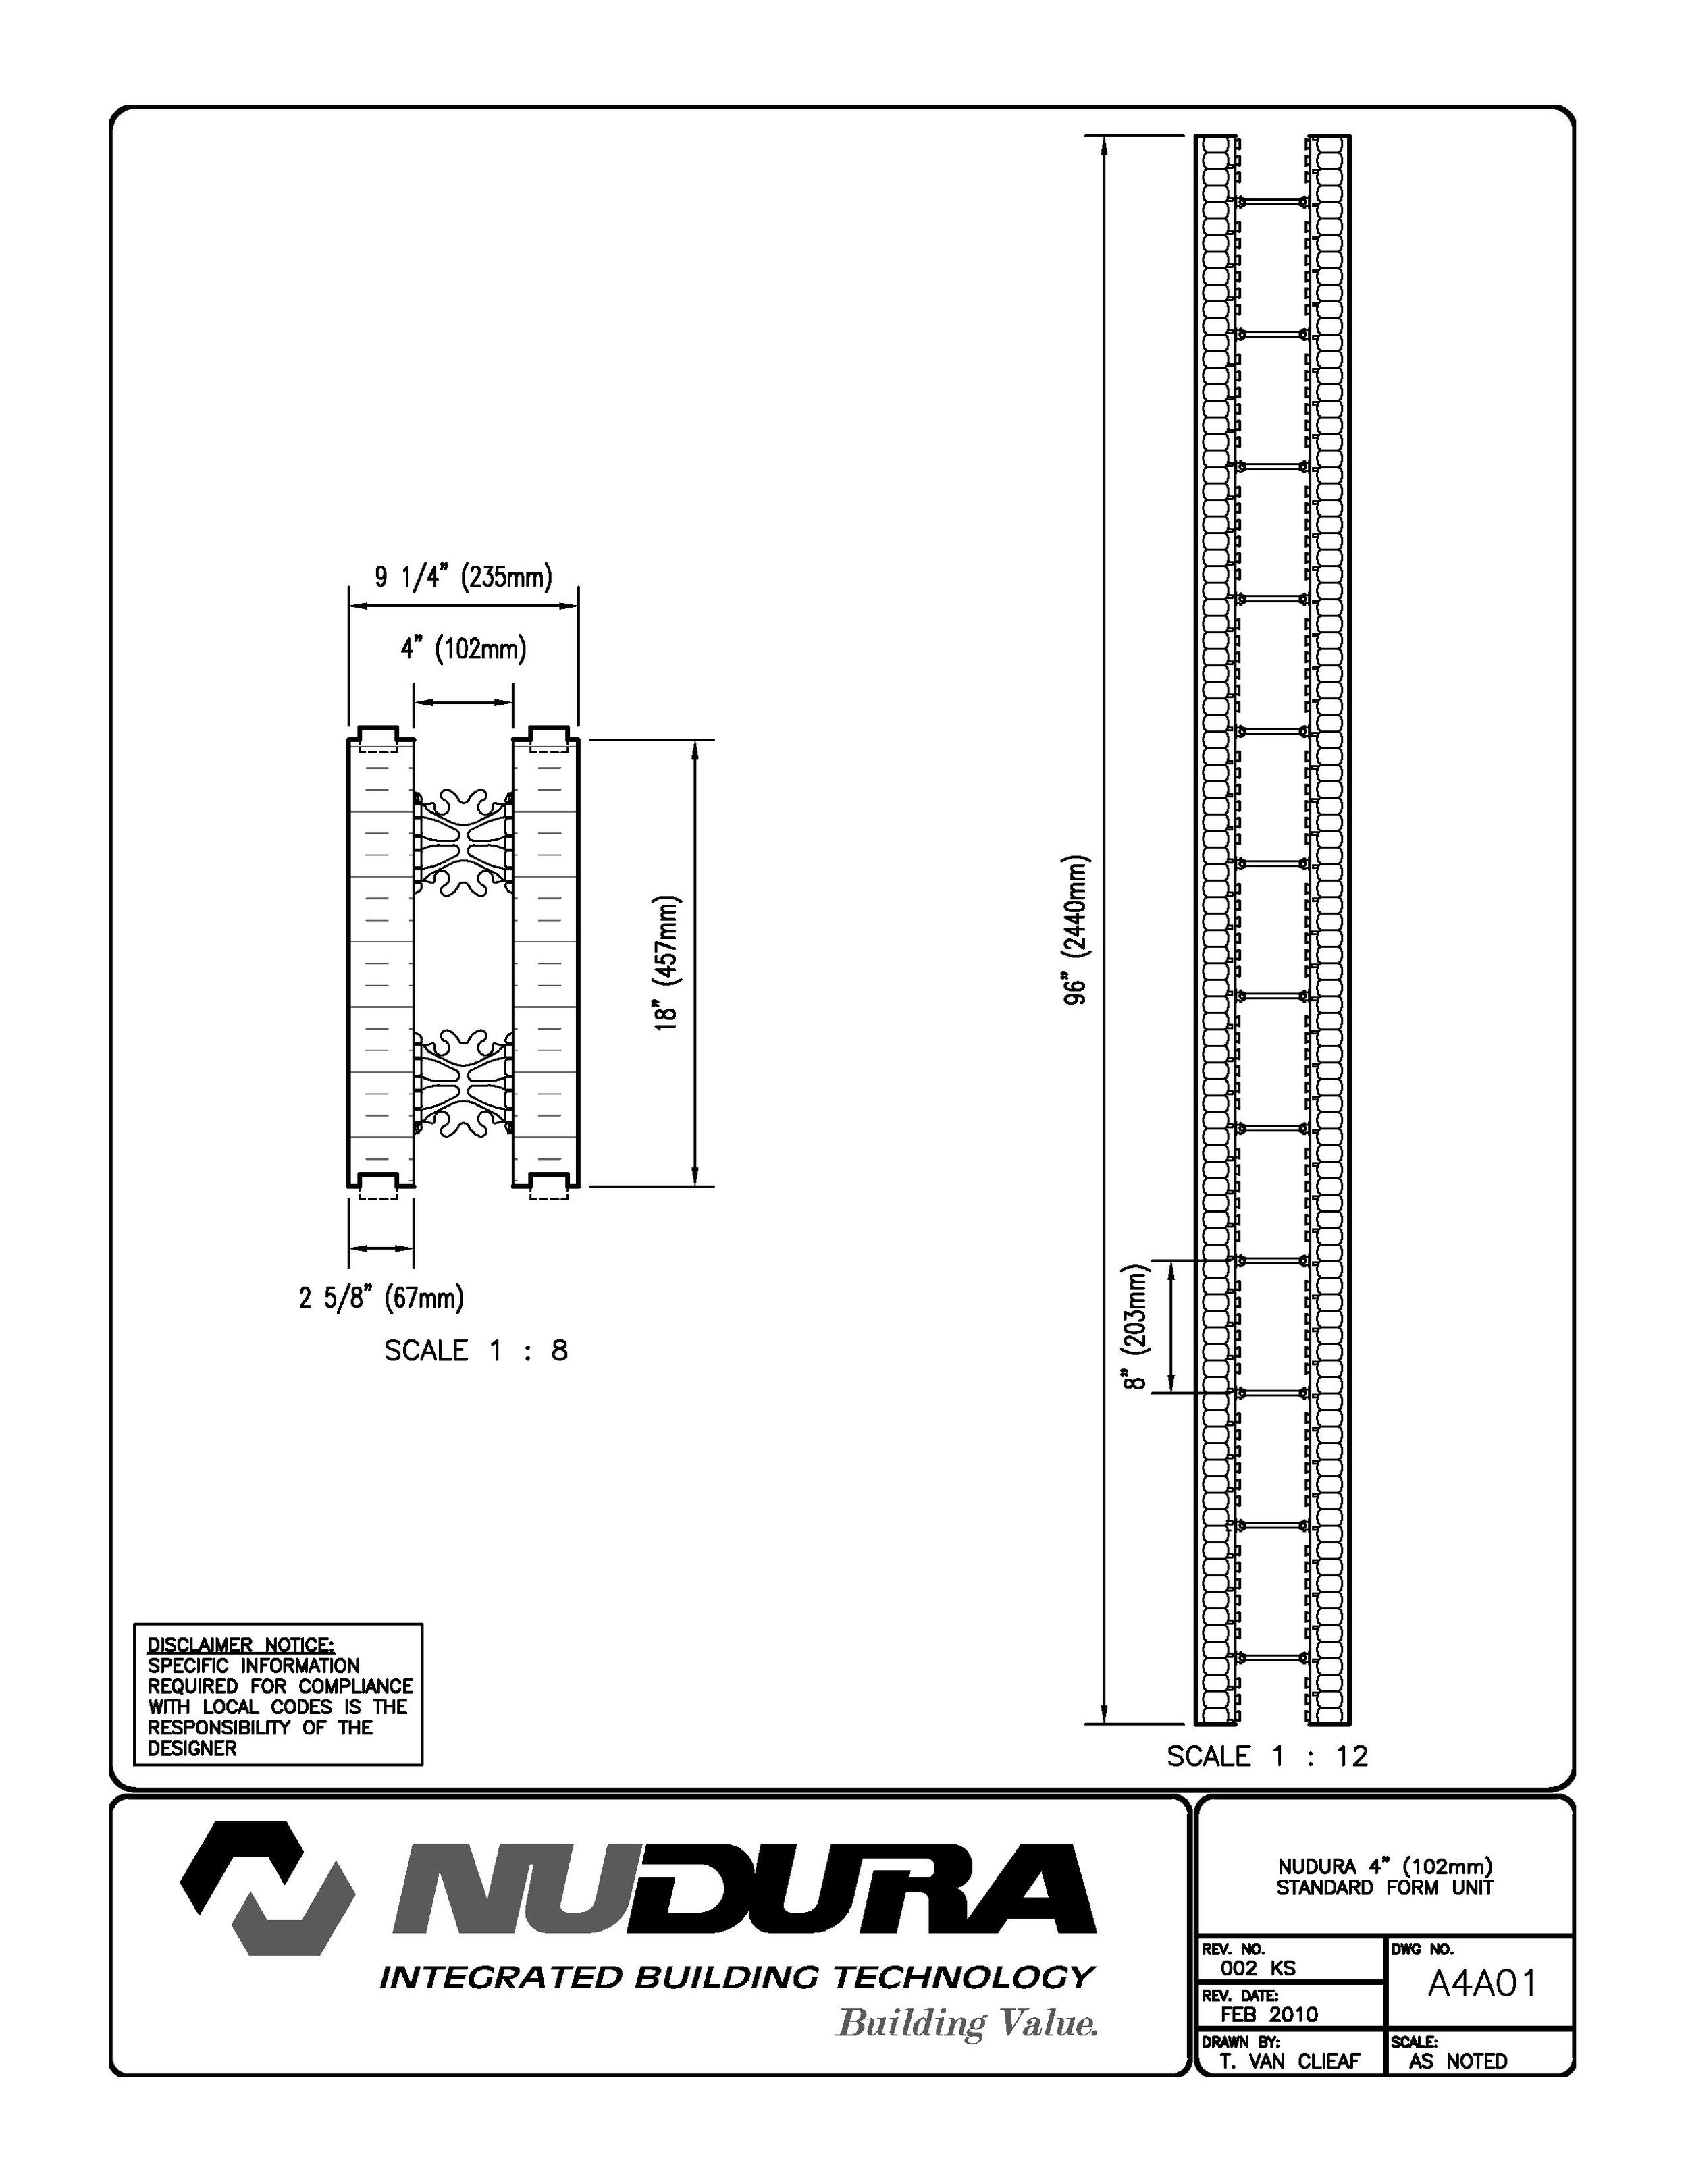 NUDURA standard form unit | A4A01 | Integrated building technology